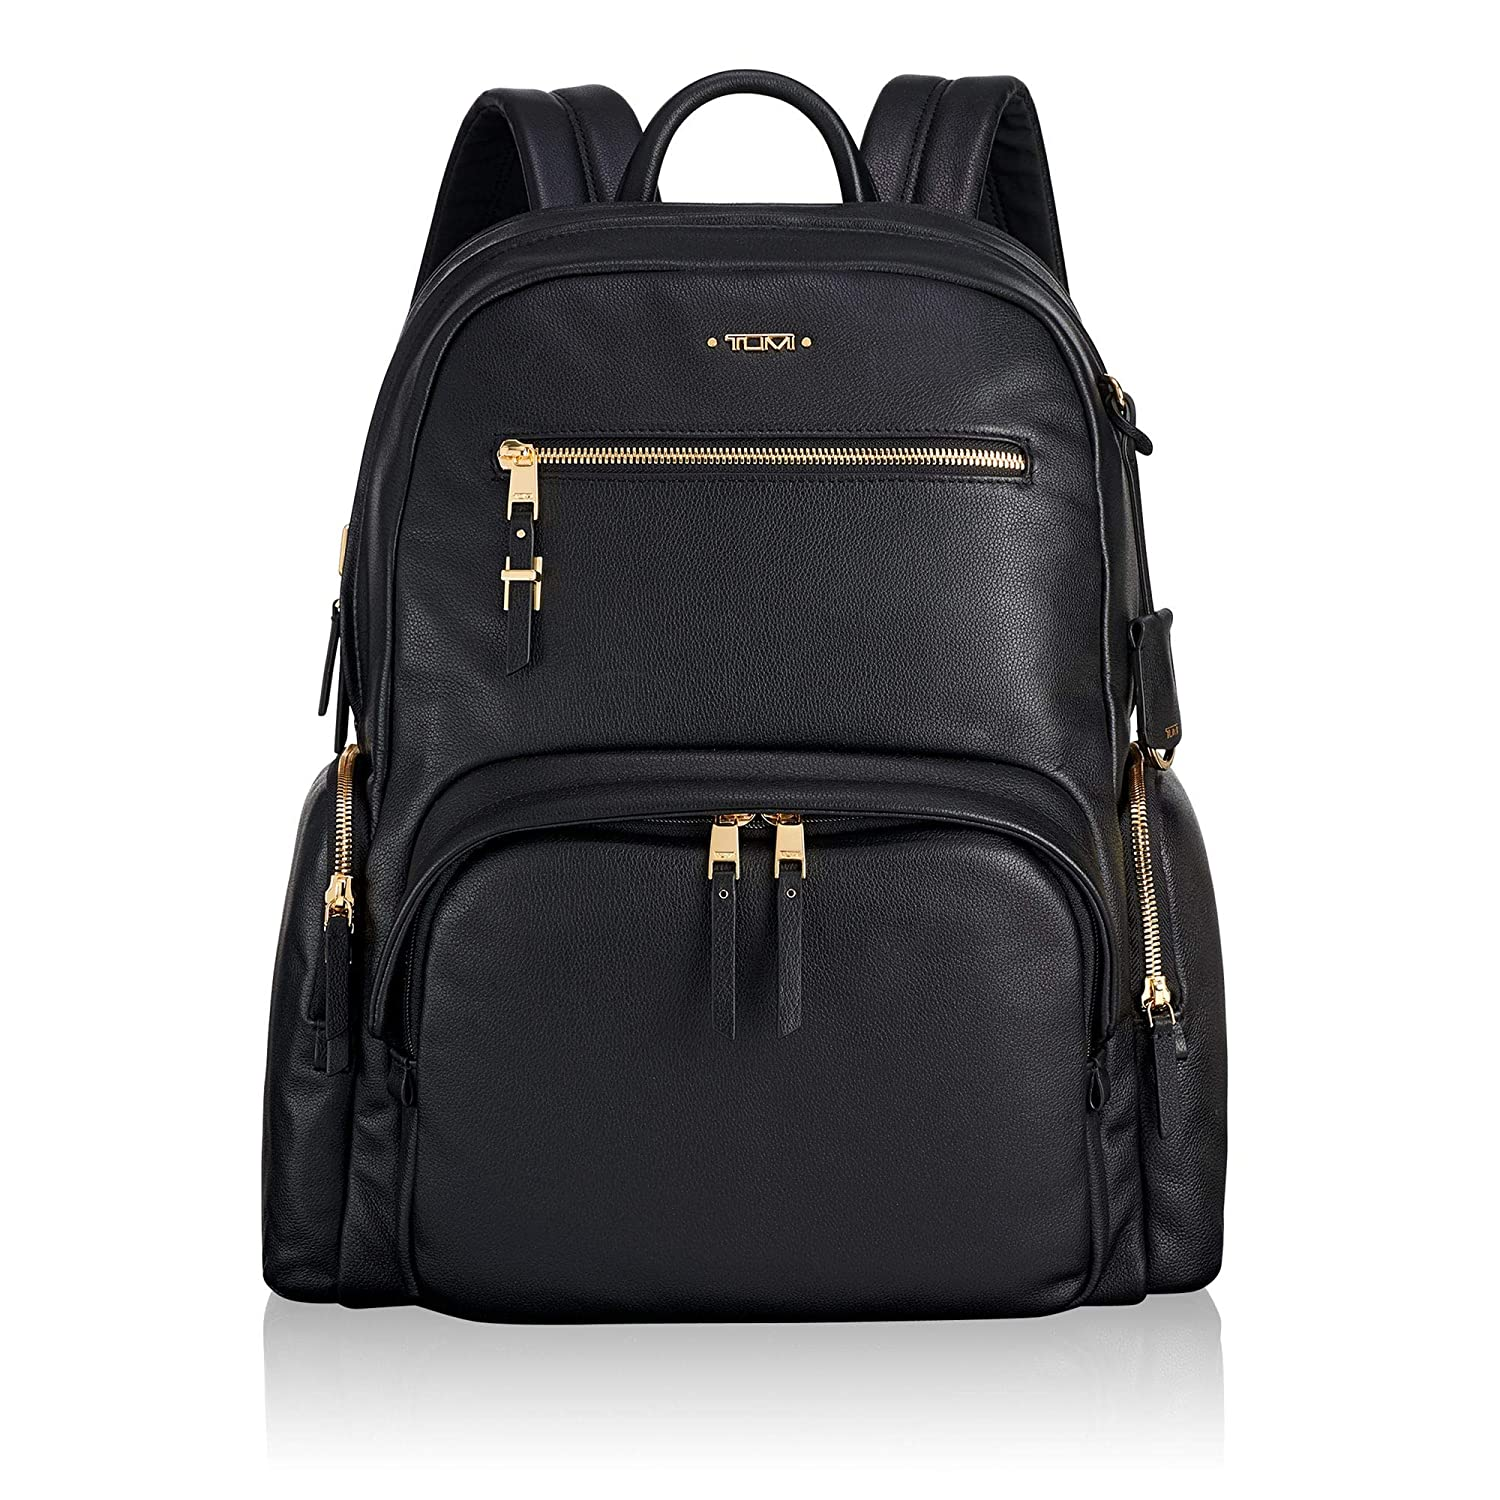 6faeb260e1 Amazon.com | TUMI - Voyageur Carson Leather Laptop Backpack - 15 Inch  Computer Bag for Women - Black | Backpacks